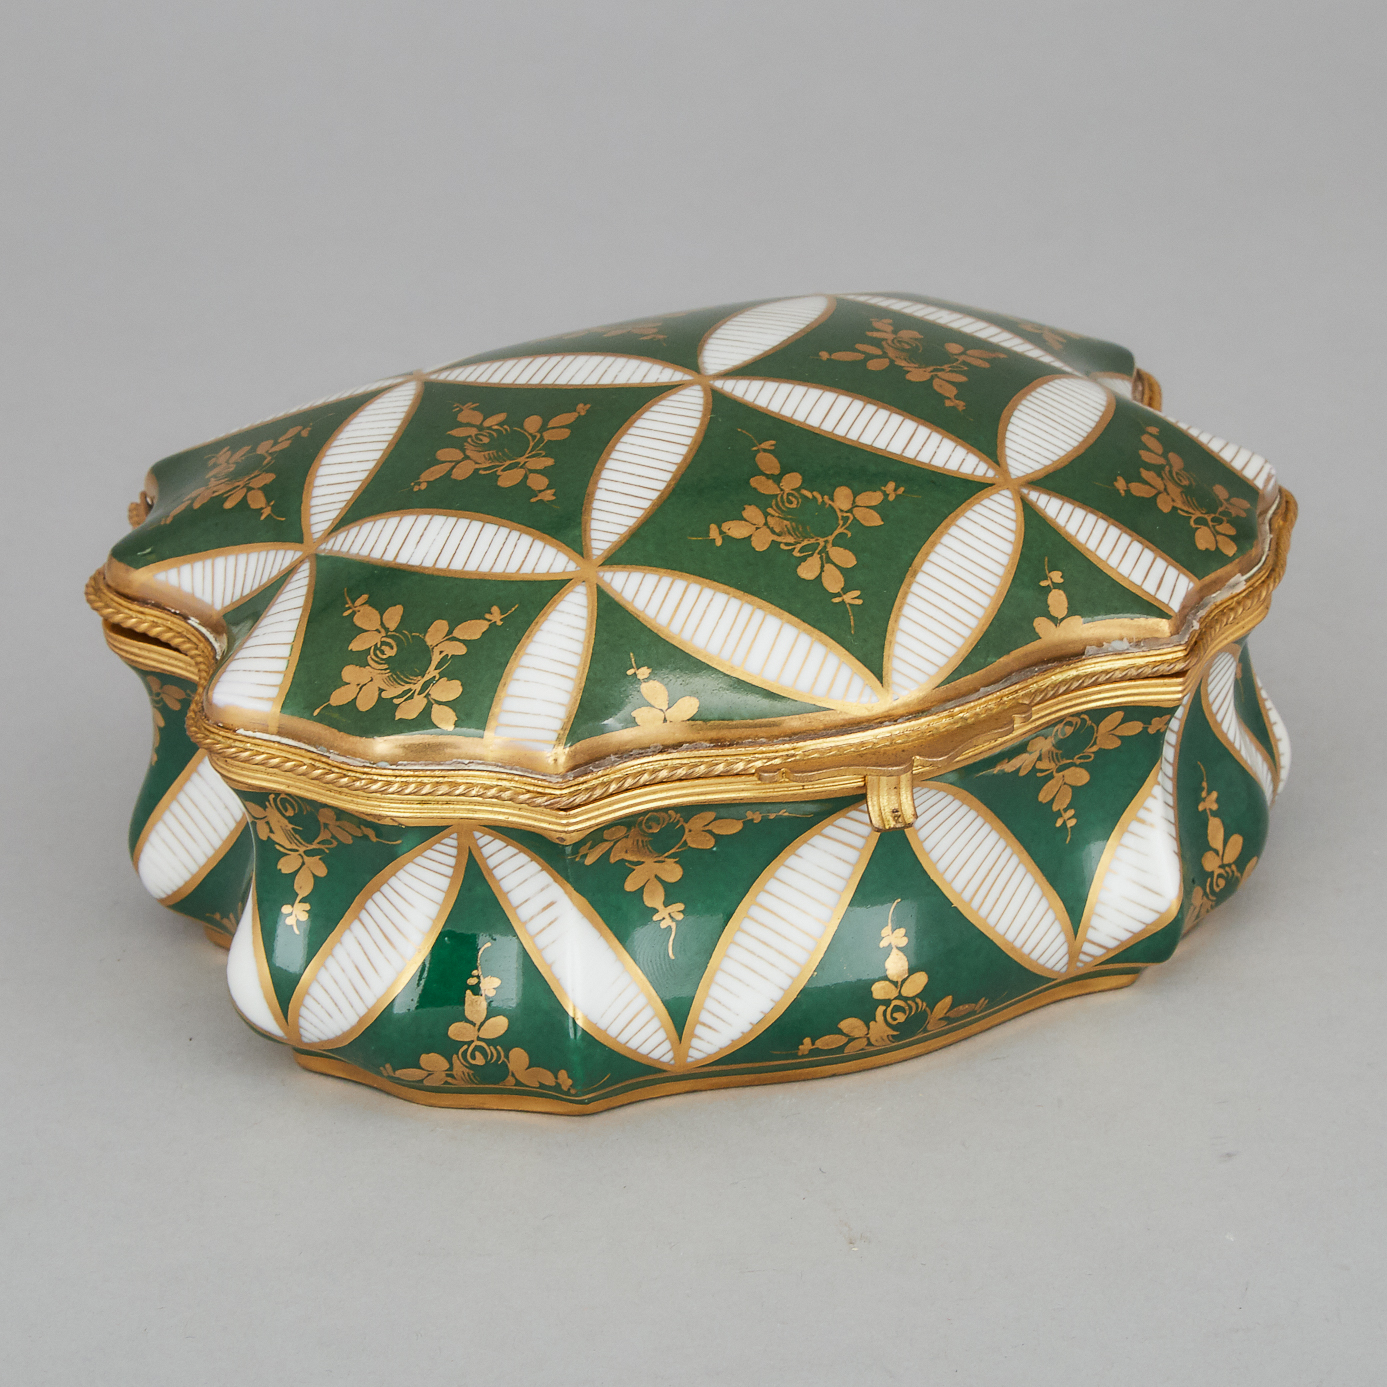 French Porcelain Trinket Box, 20th century